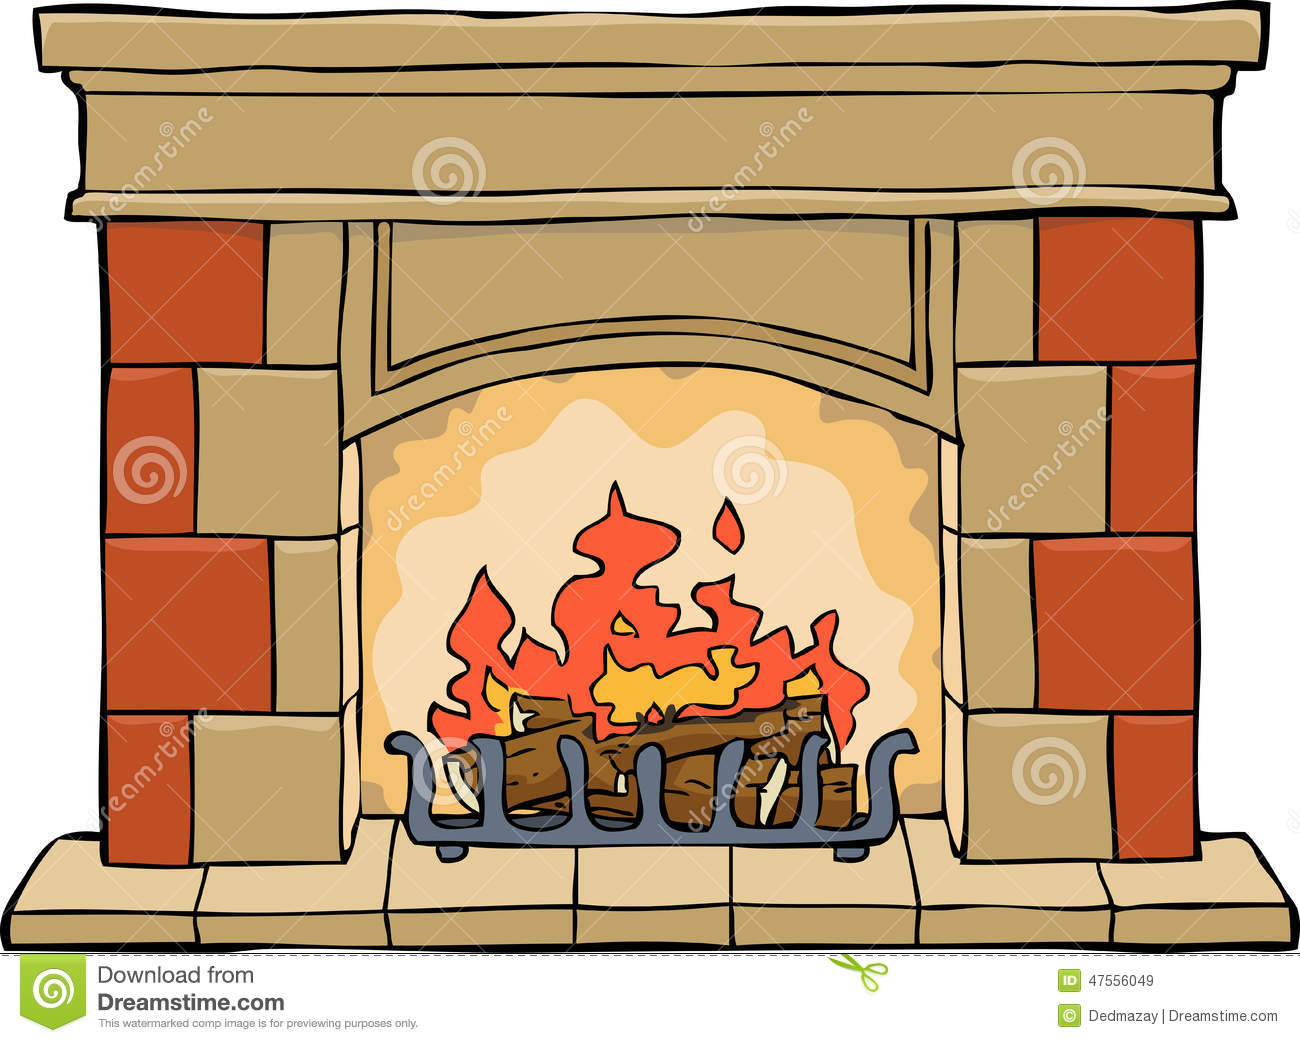 Fireplace clipart no background.